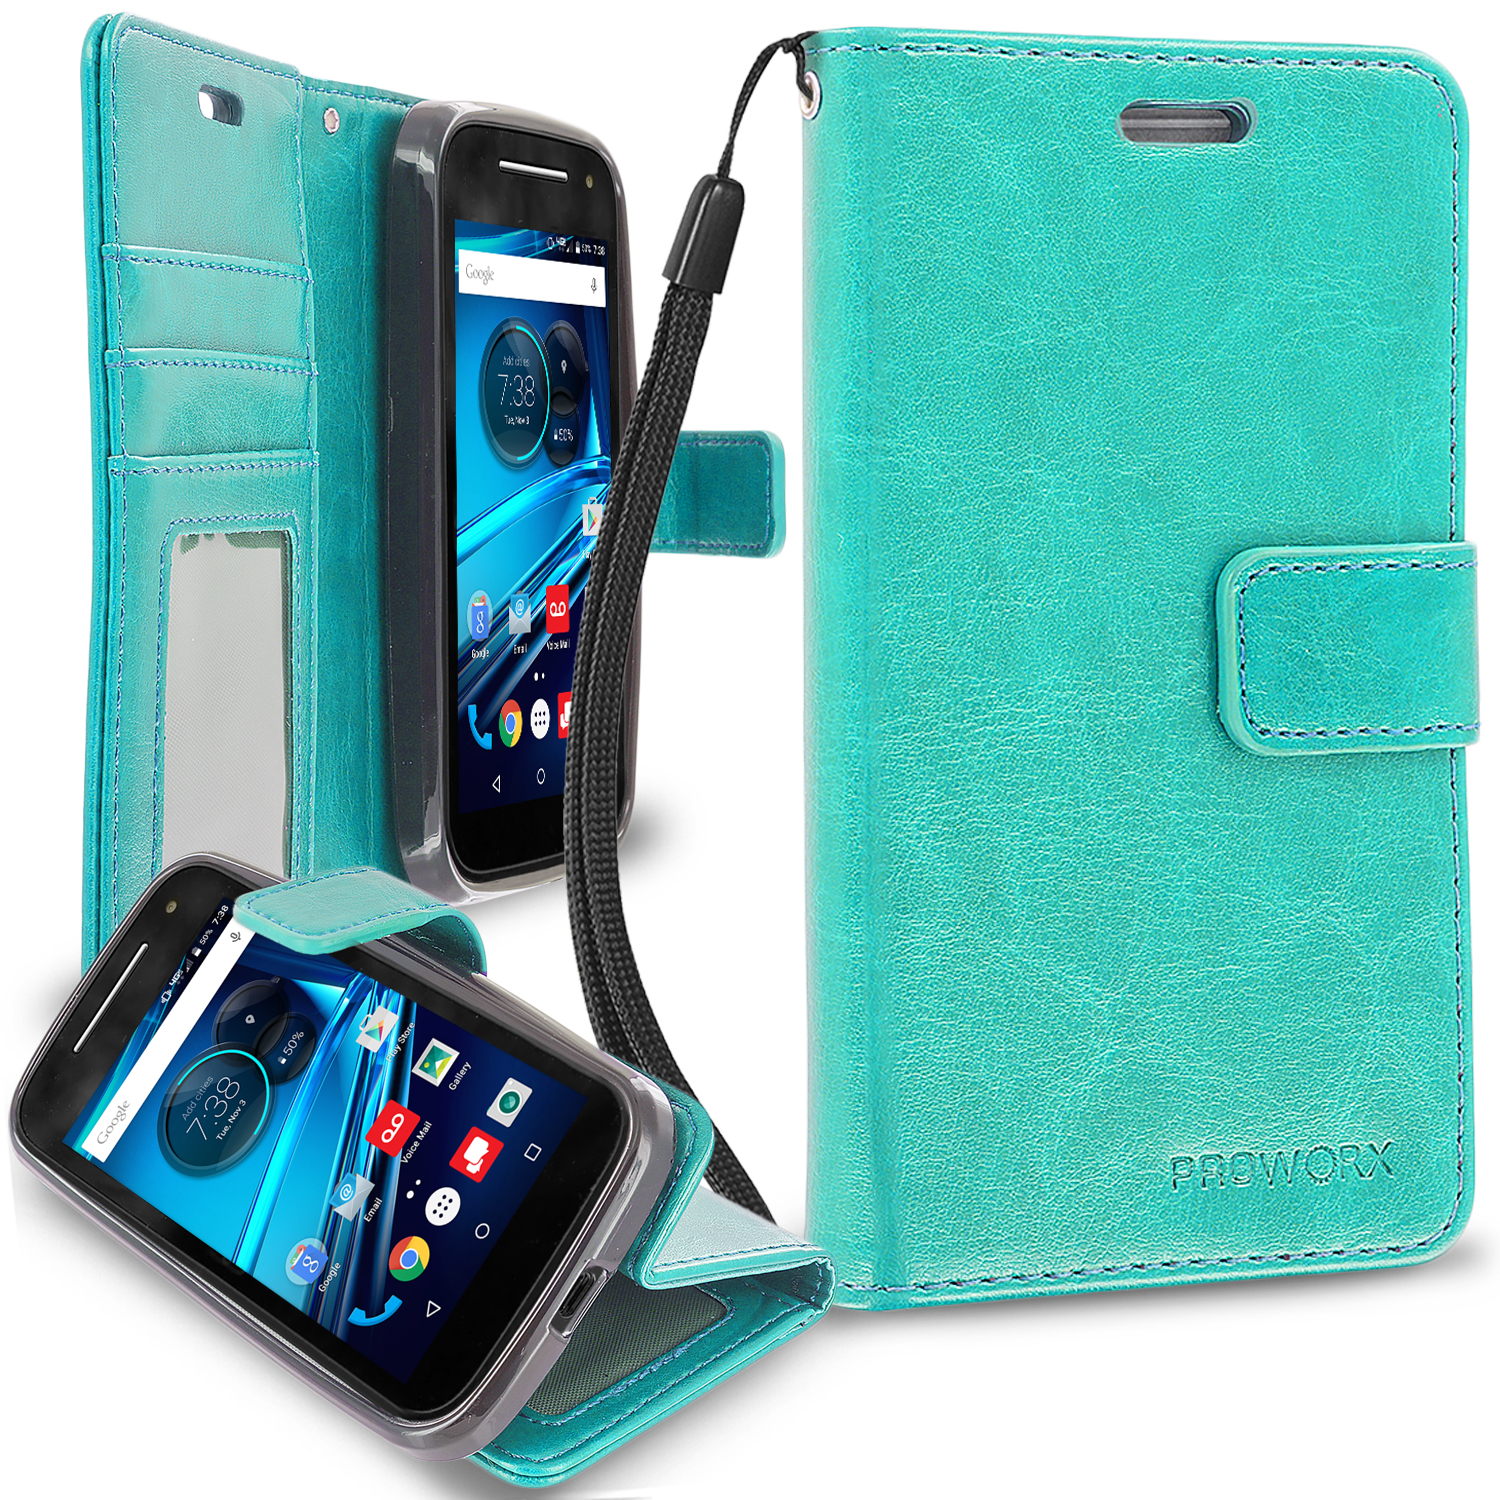 Motorola Moto E LTE 2nd Generation Mint Green ProWorx Wallet Case Luxury PU Leather Case Cover With Card Slots & Stand